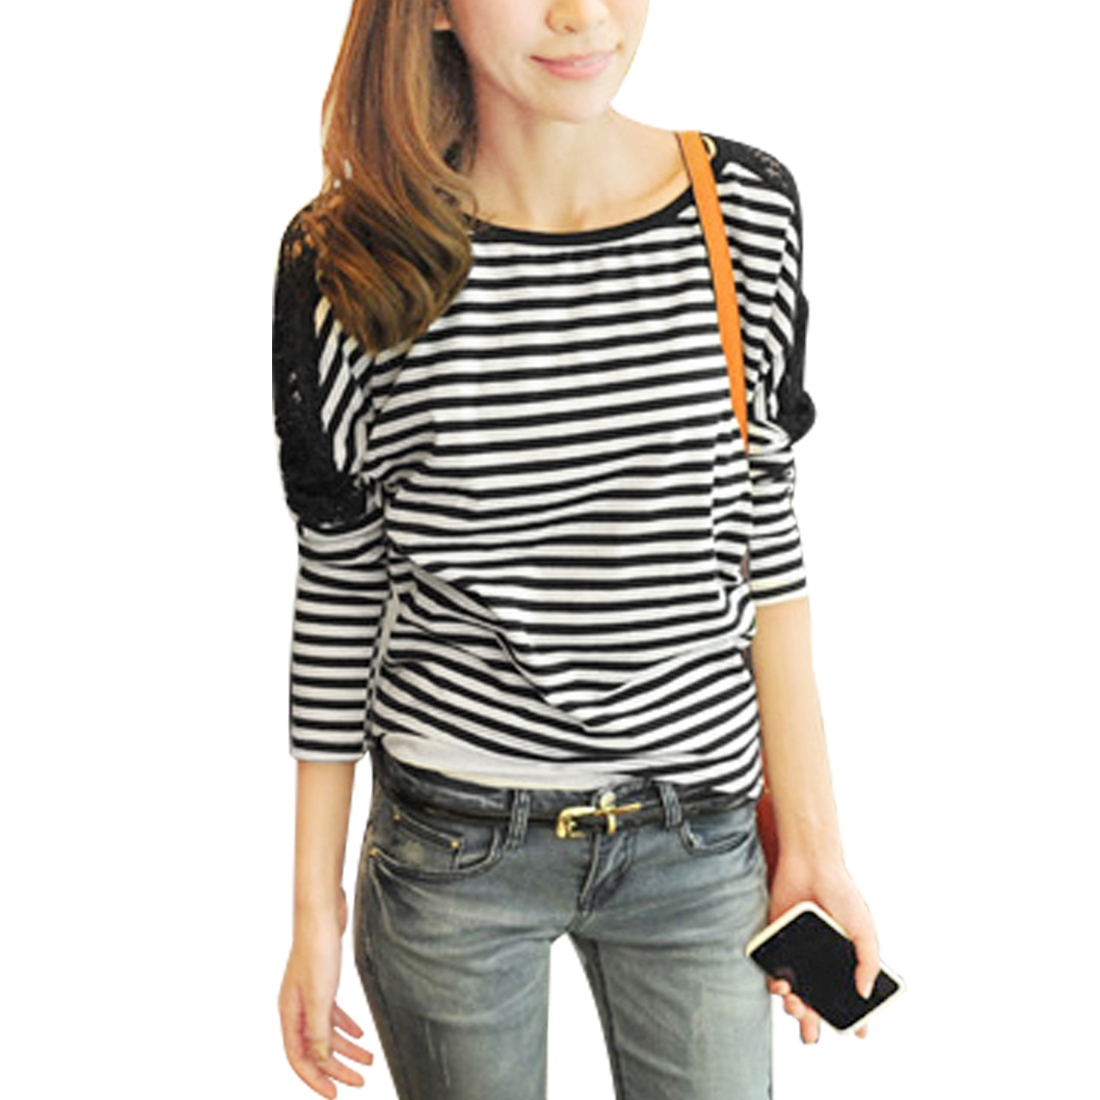 Autumn Low Round Neck Black White Stripes Print T-shirt XS for Women